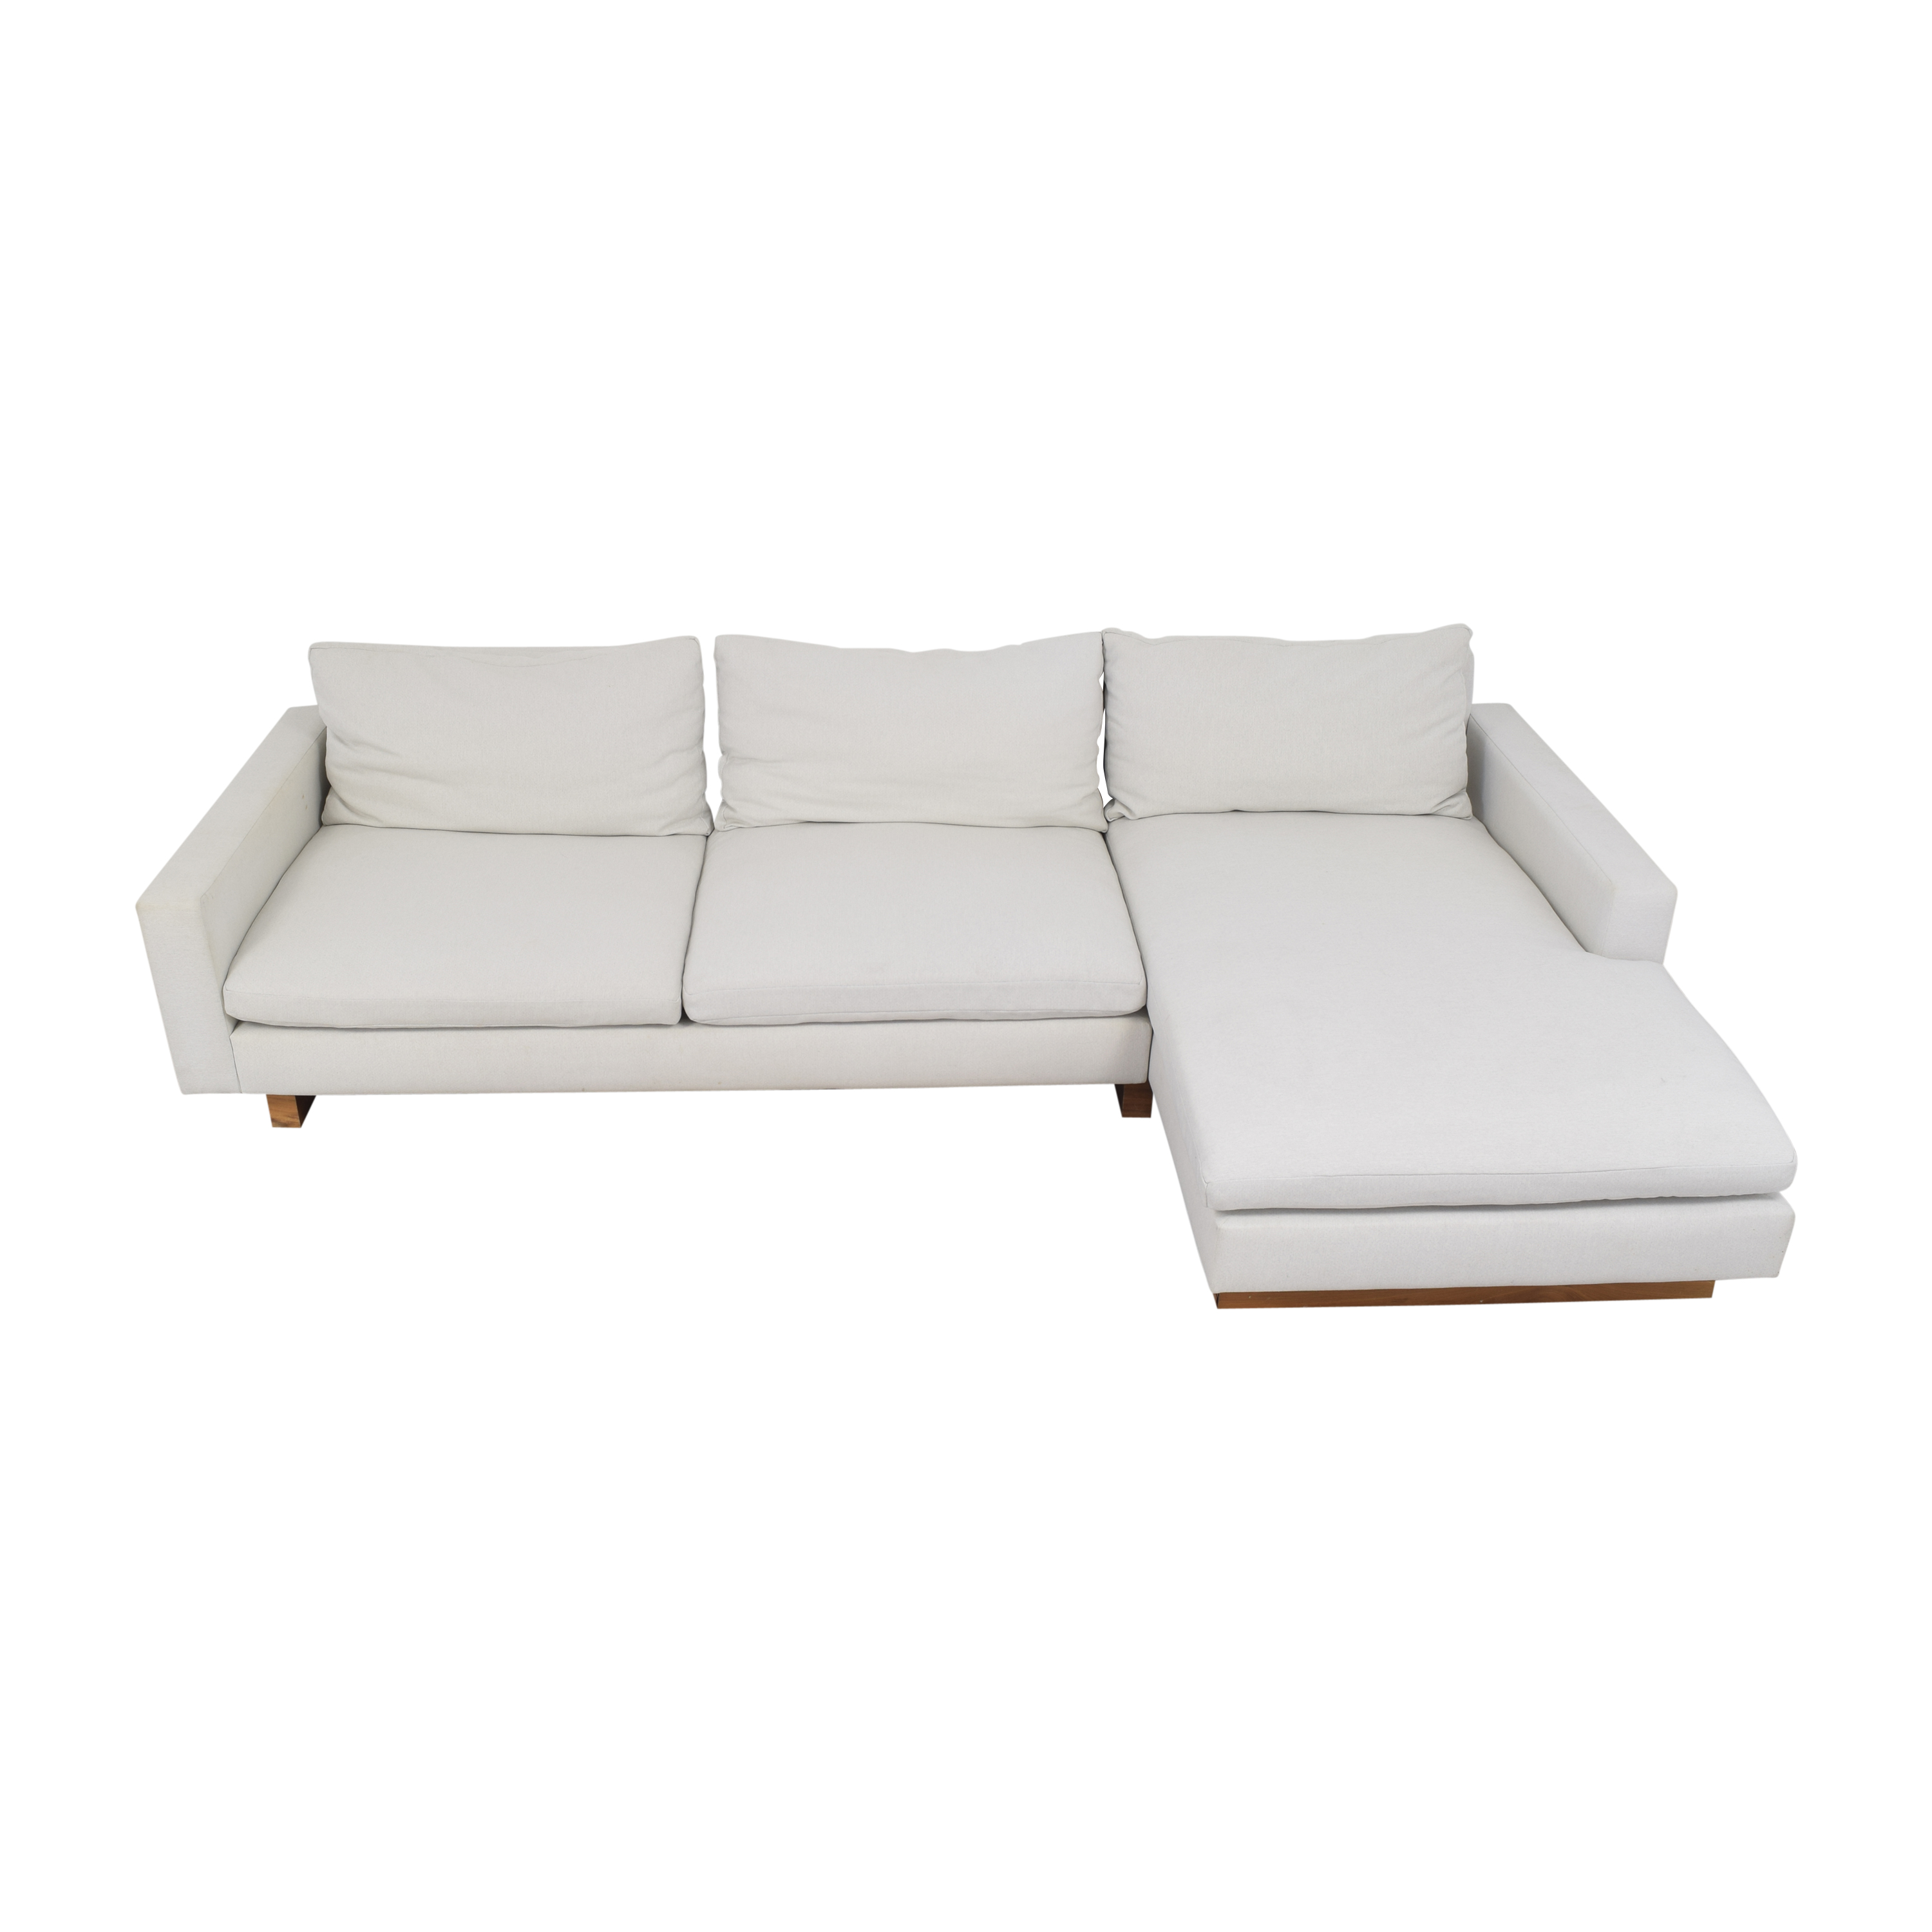 buy West Elm West Elm Harmony Two Piece Chaise Sectional online